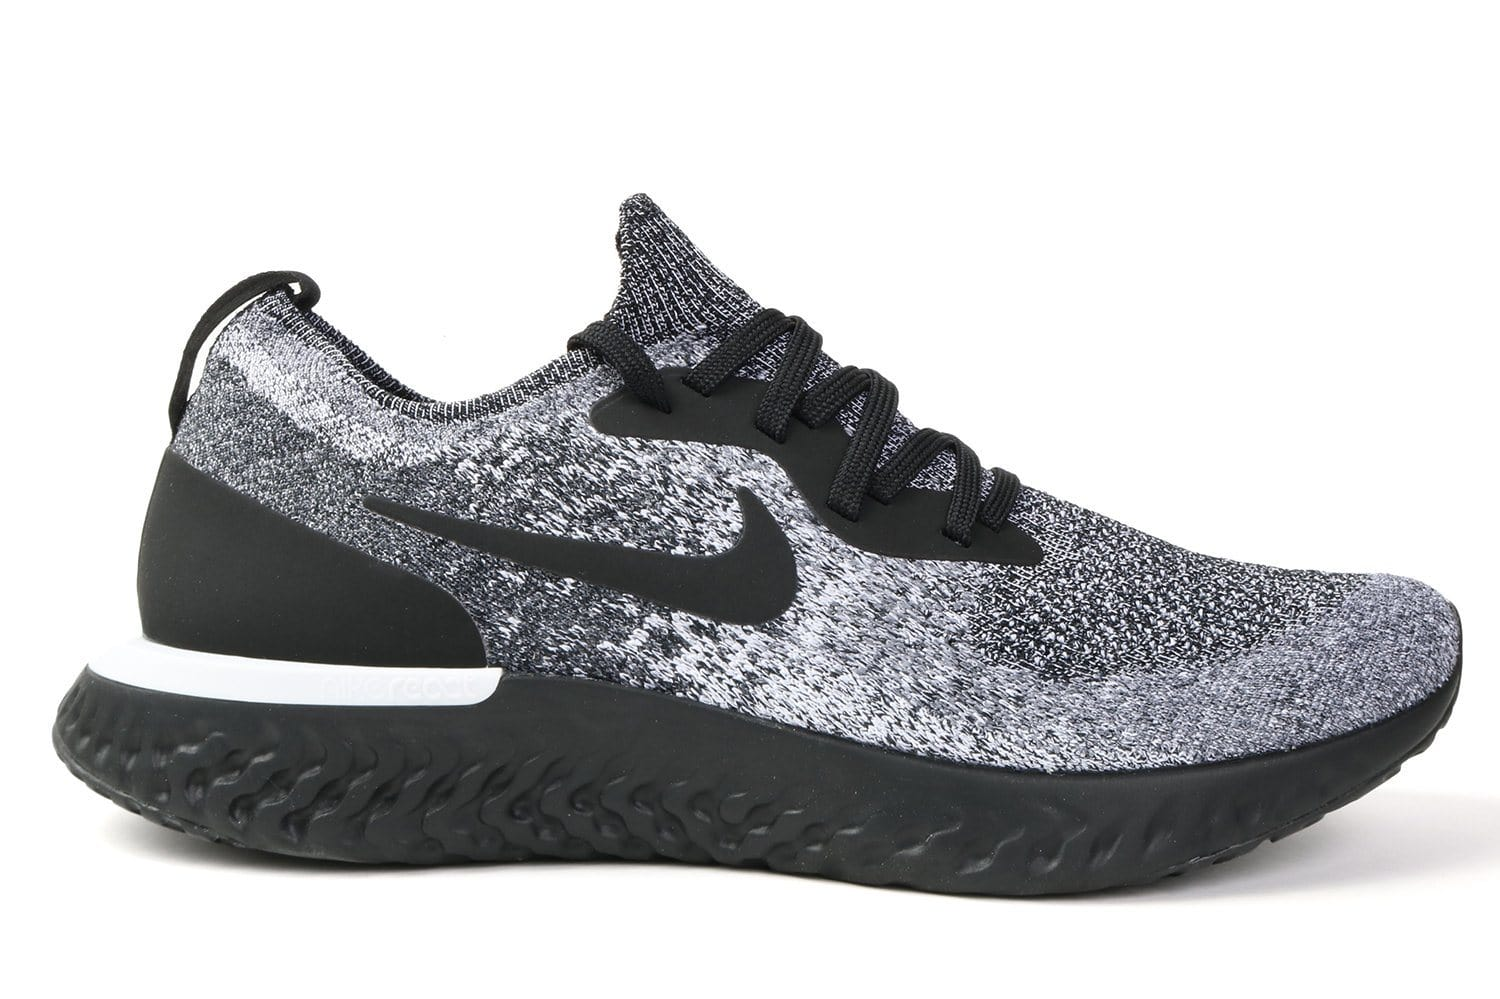 new product 45dfb 6875b NIKE EPIC REACT FLYKNIT - AQ0067-011